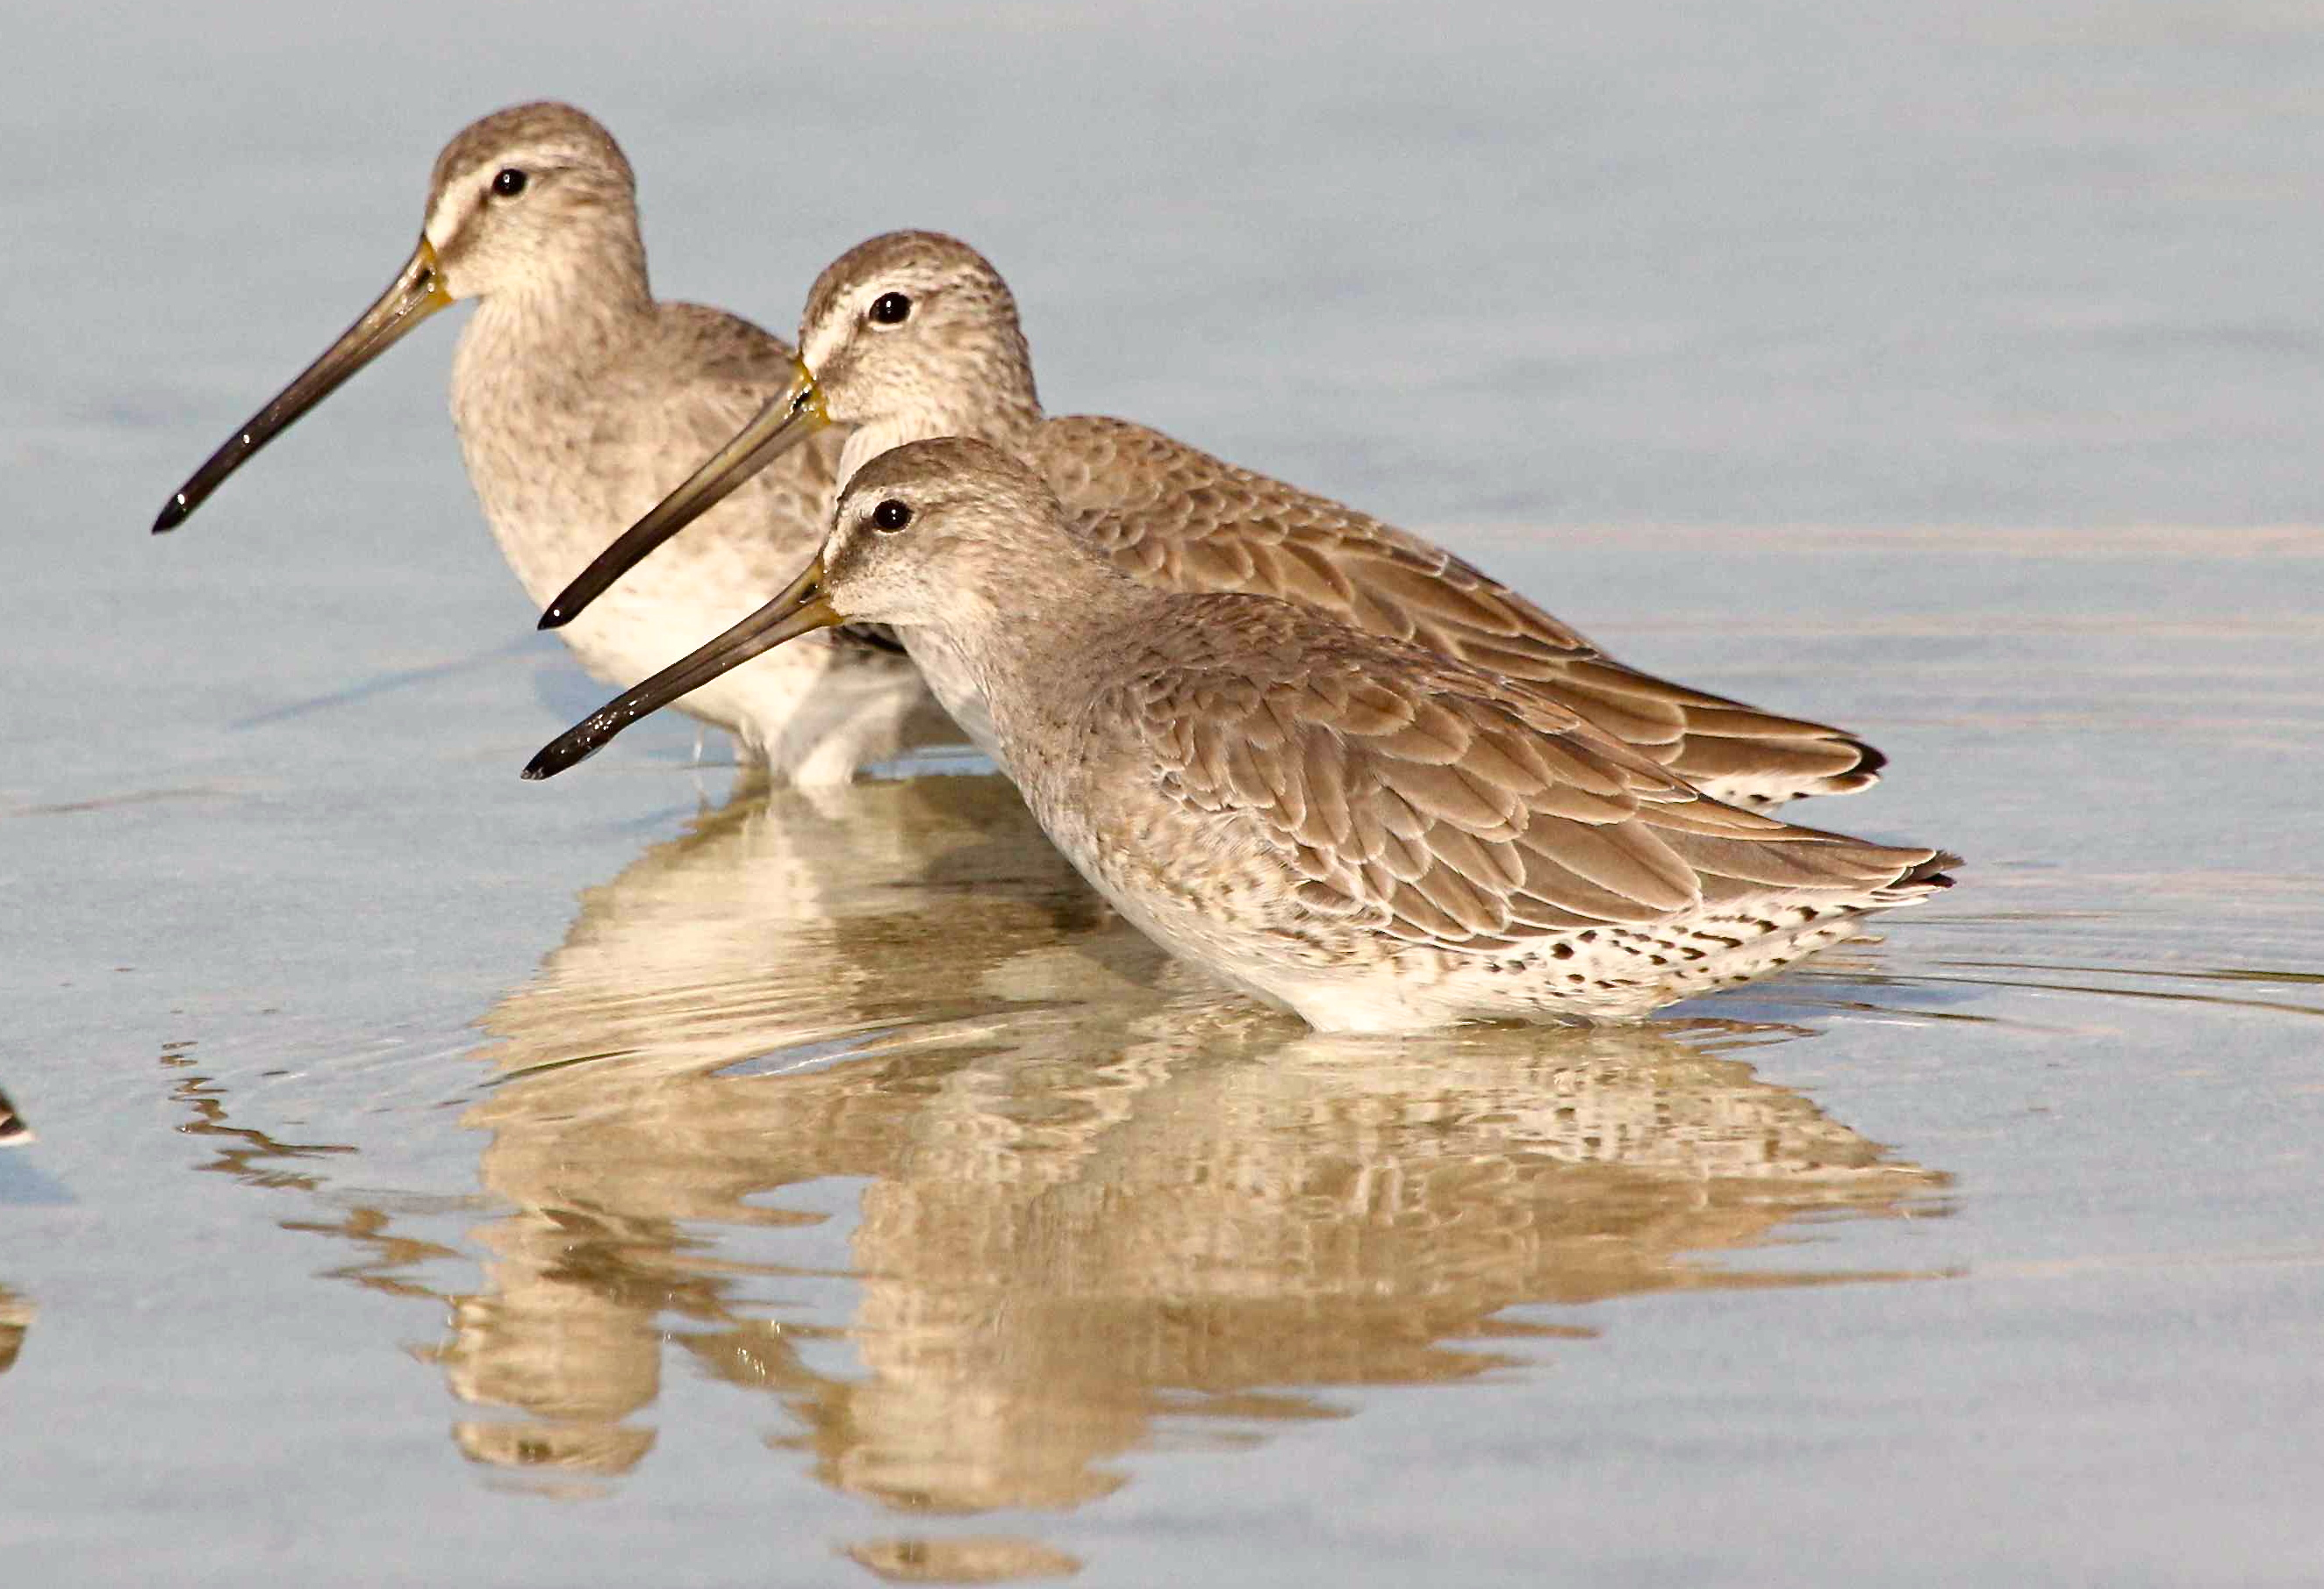 Short-billed Dowitcher, Abaco (Bruce Hallett)